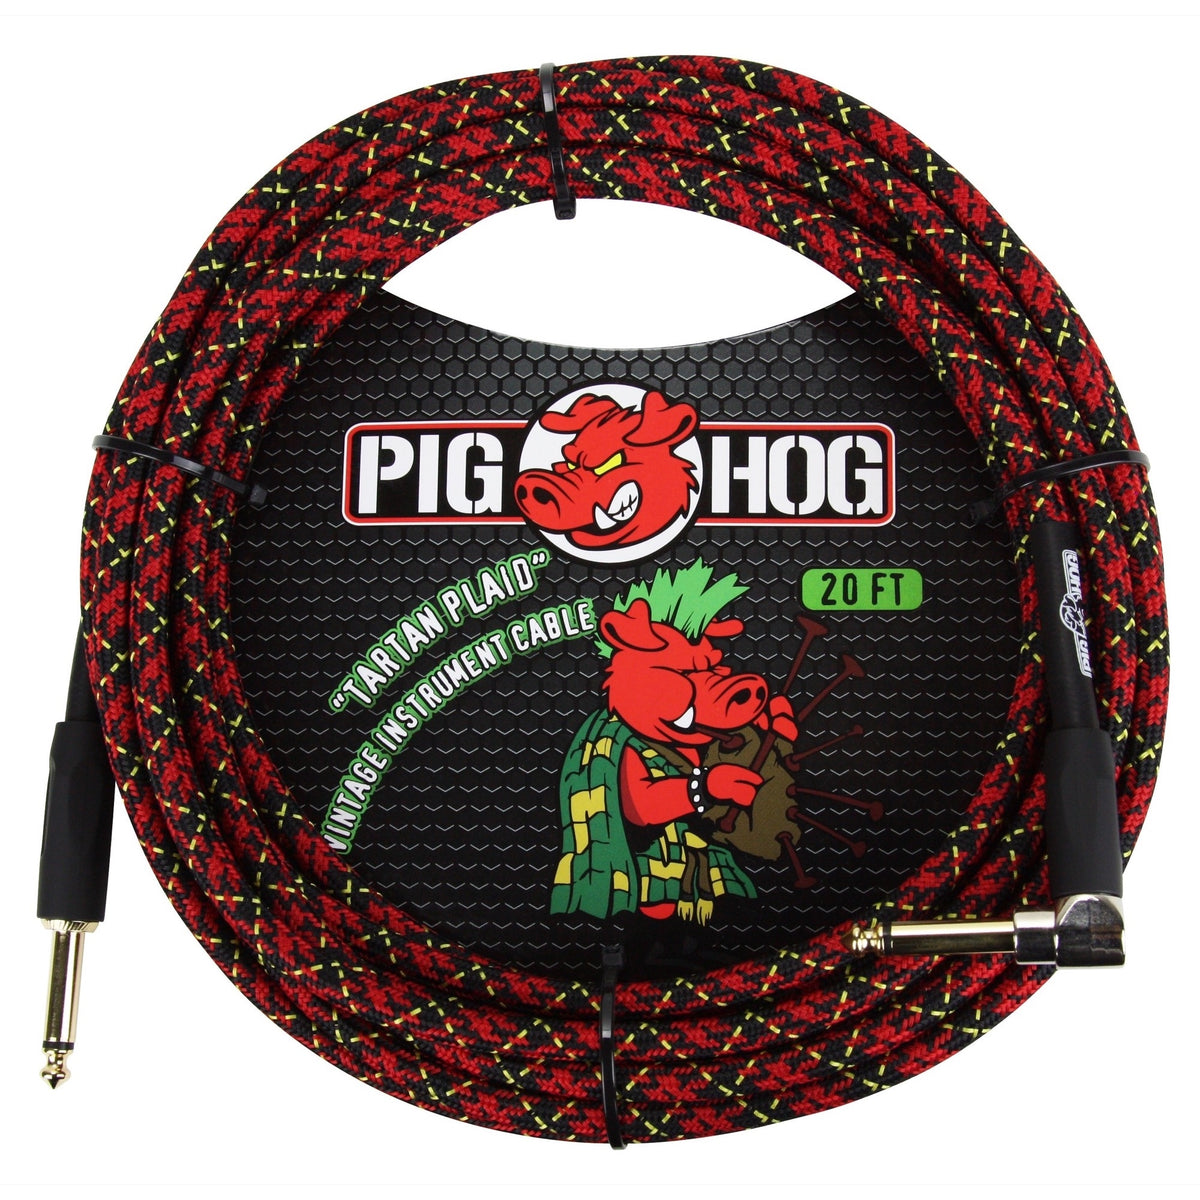 Pig Hog Color Instrument Cable, 1/4 Inch Straight to 1/4 Inch Right Angle, Tartan Plaid, 20'